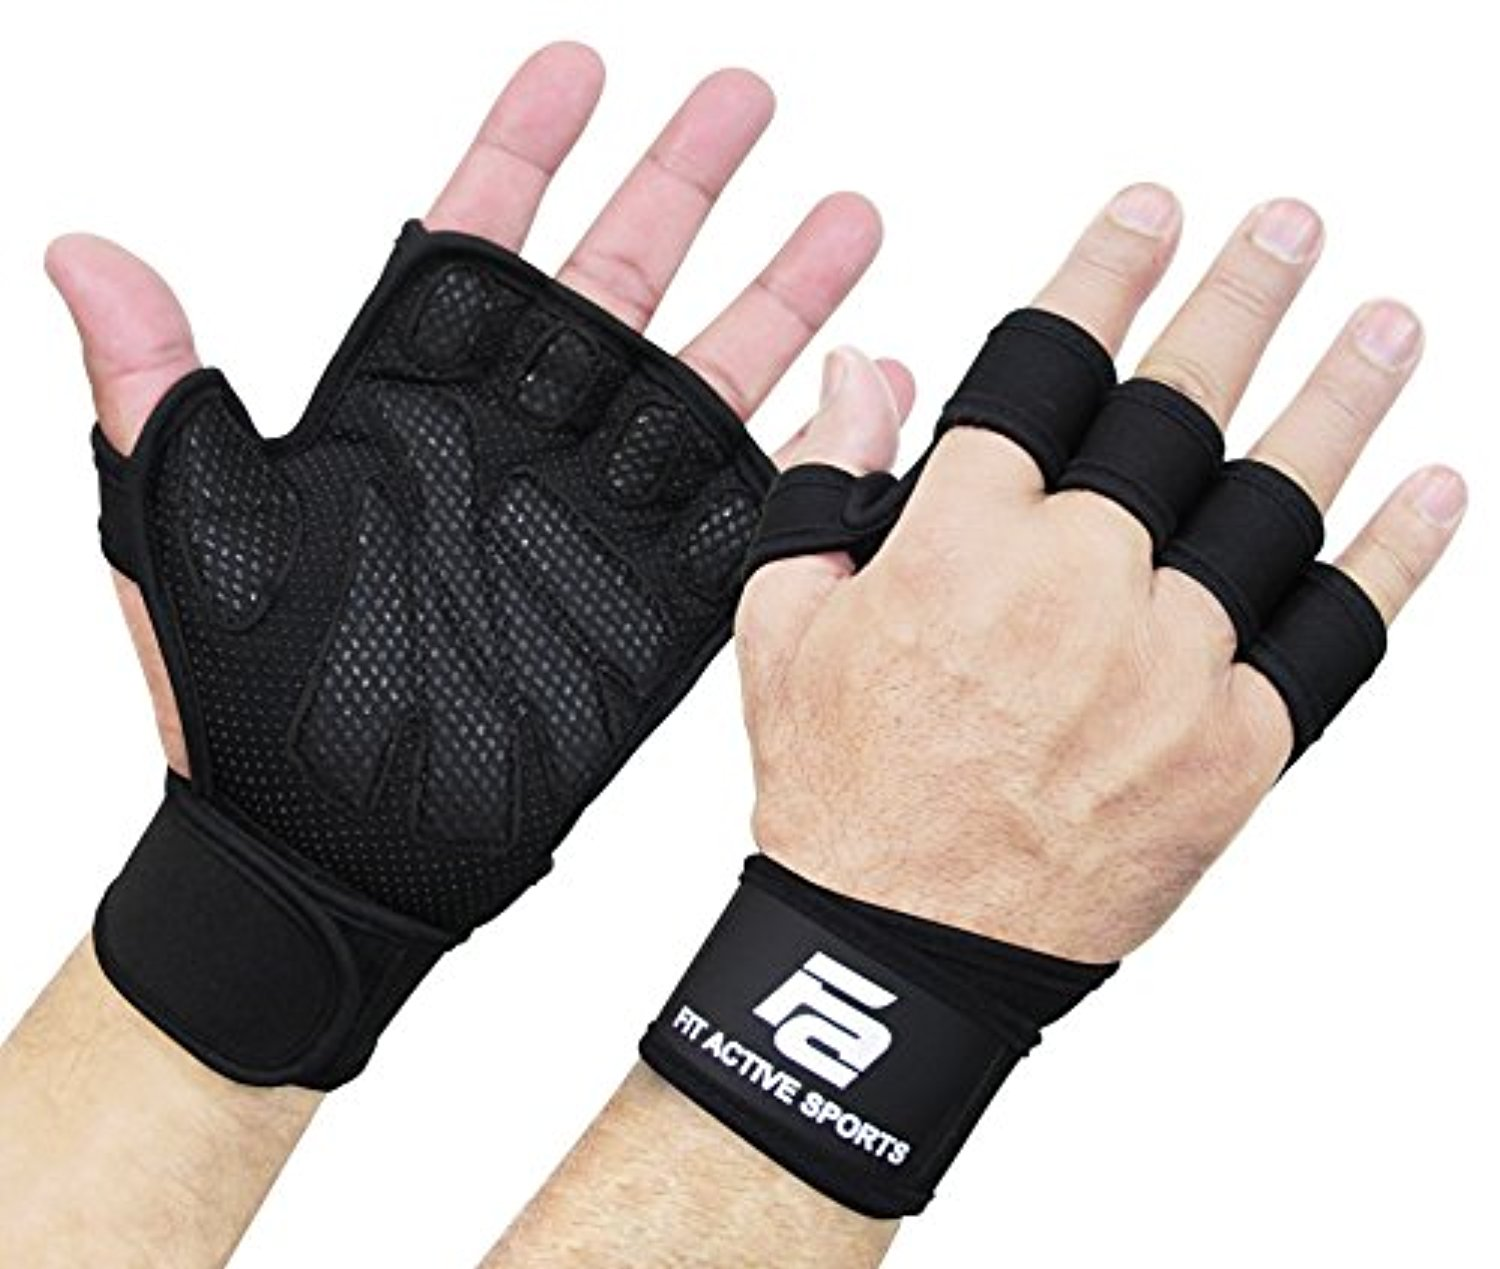 Ventilated Weight Lifting Gloves with Built-In Wrist Wraps. Full Palm Protection - Everyday Crosstrain